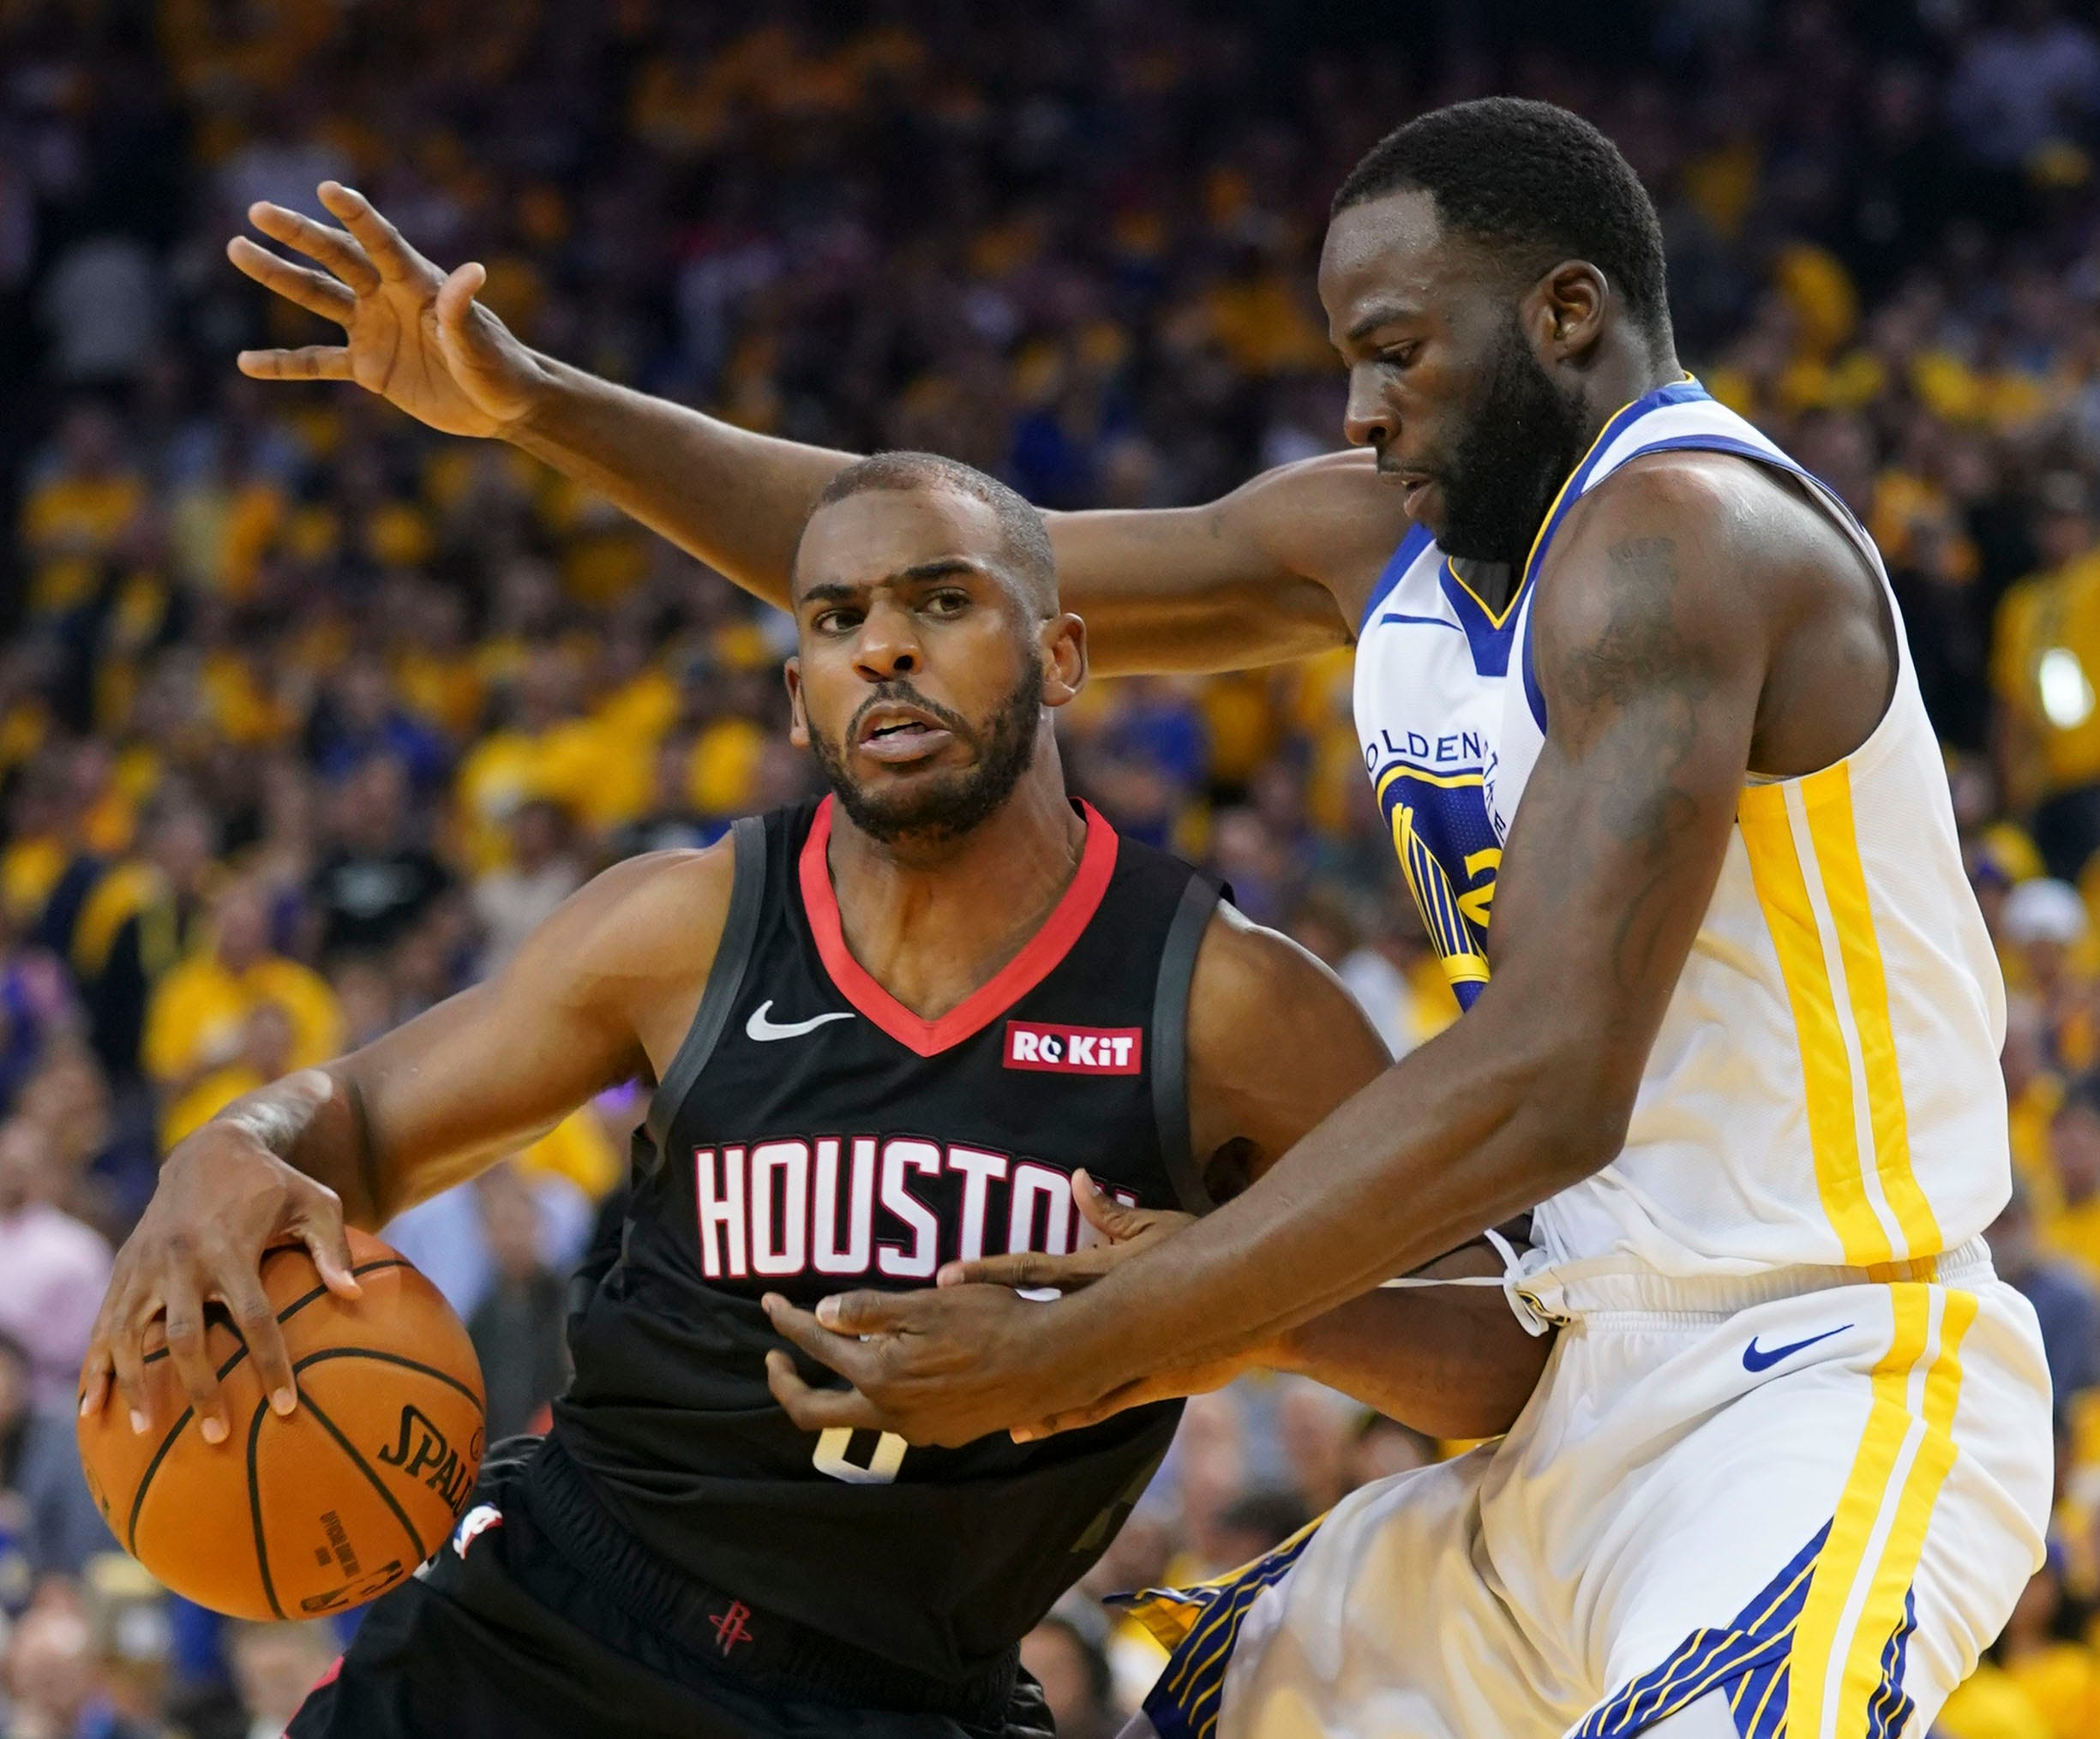 May 8: Houston Rockets guard Chris Paul (3) dribbles the basketball against Golden State Warriors forward Draymond Green (23) during the second quarter of Game 5 at Oracle Arena.